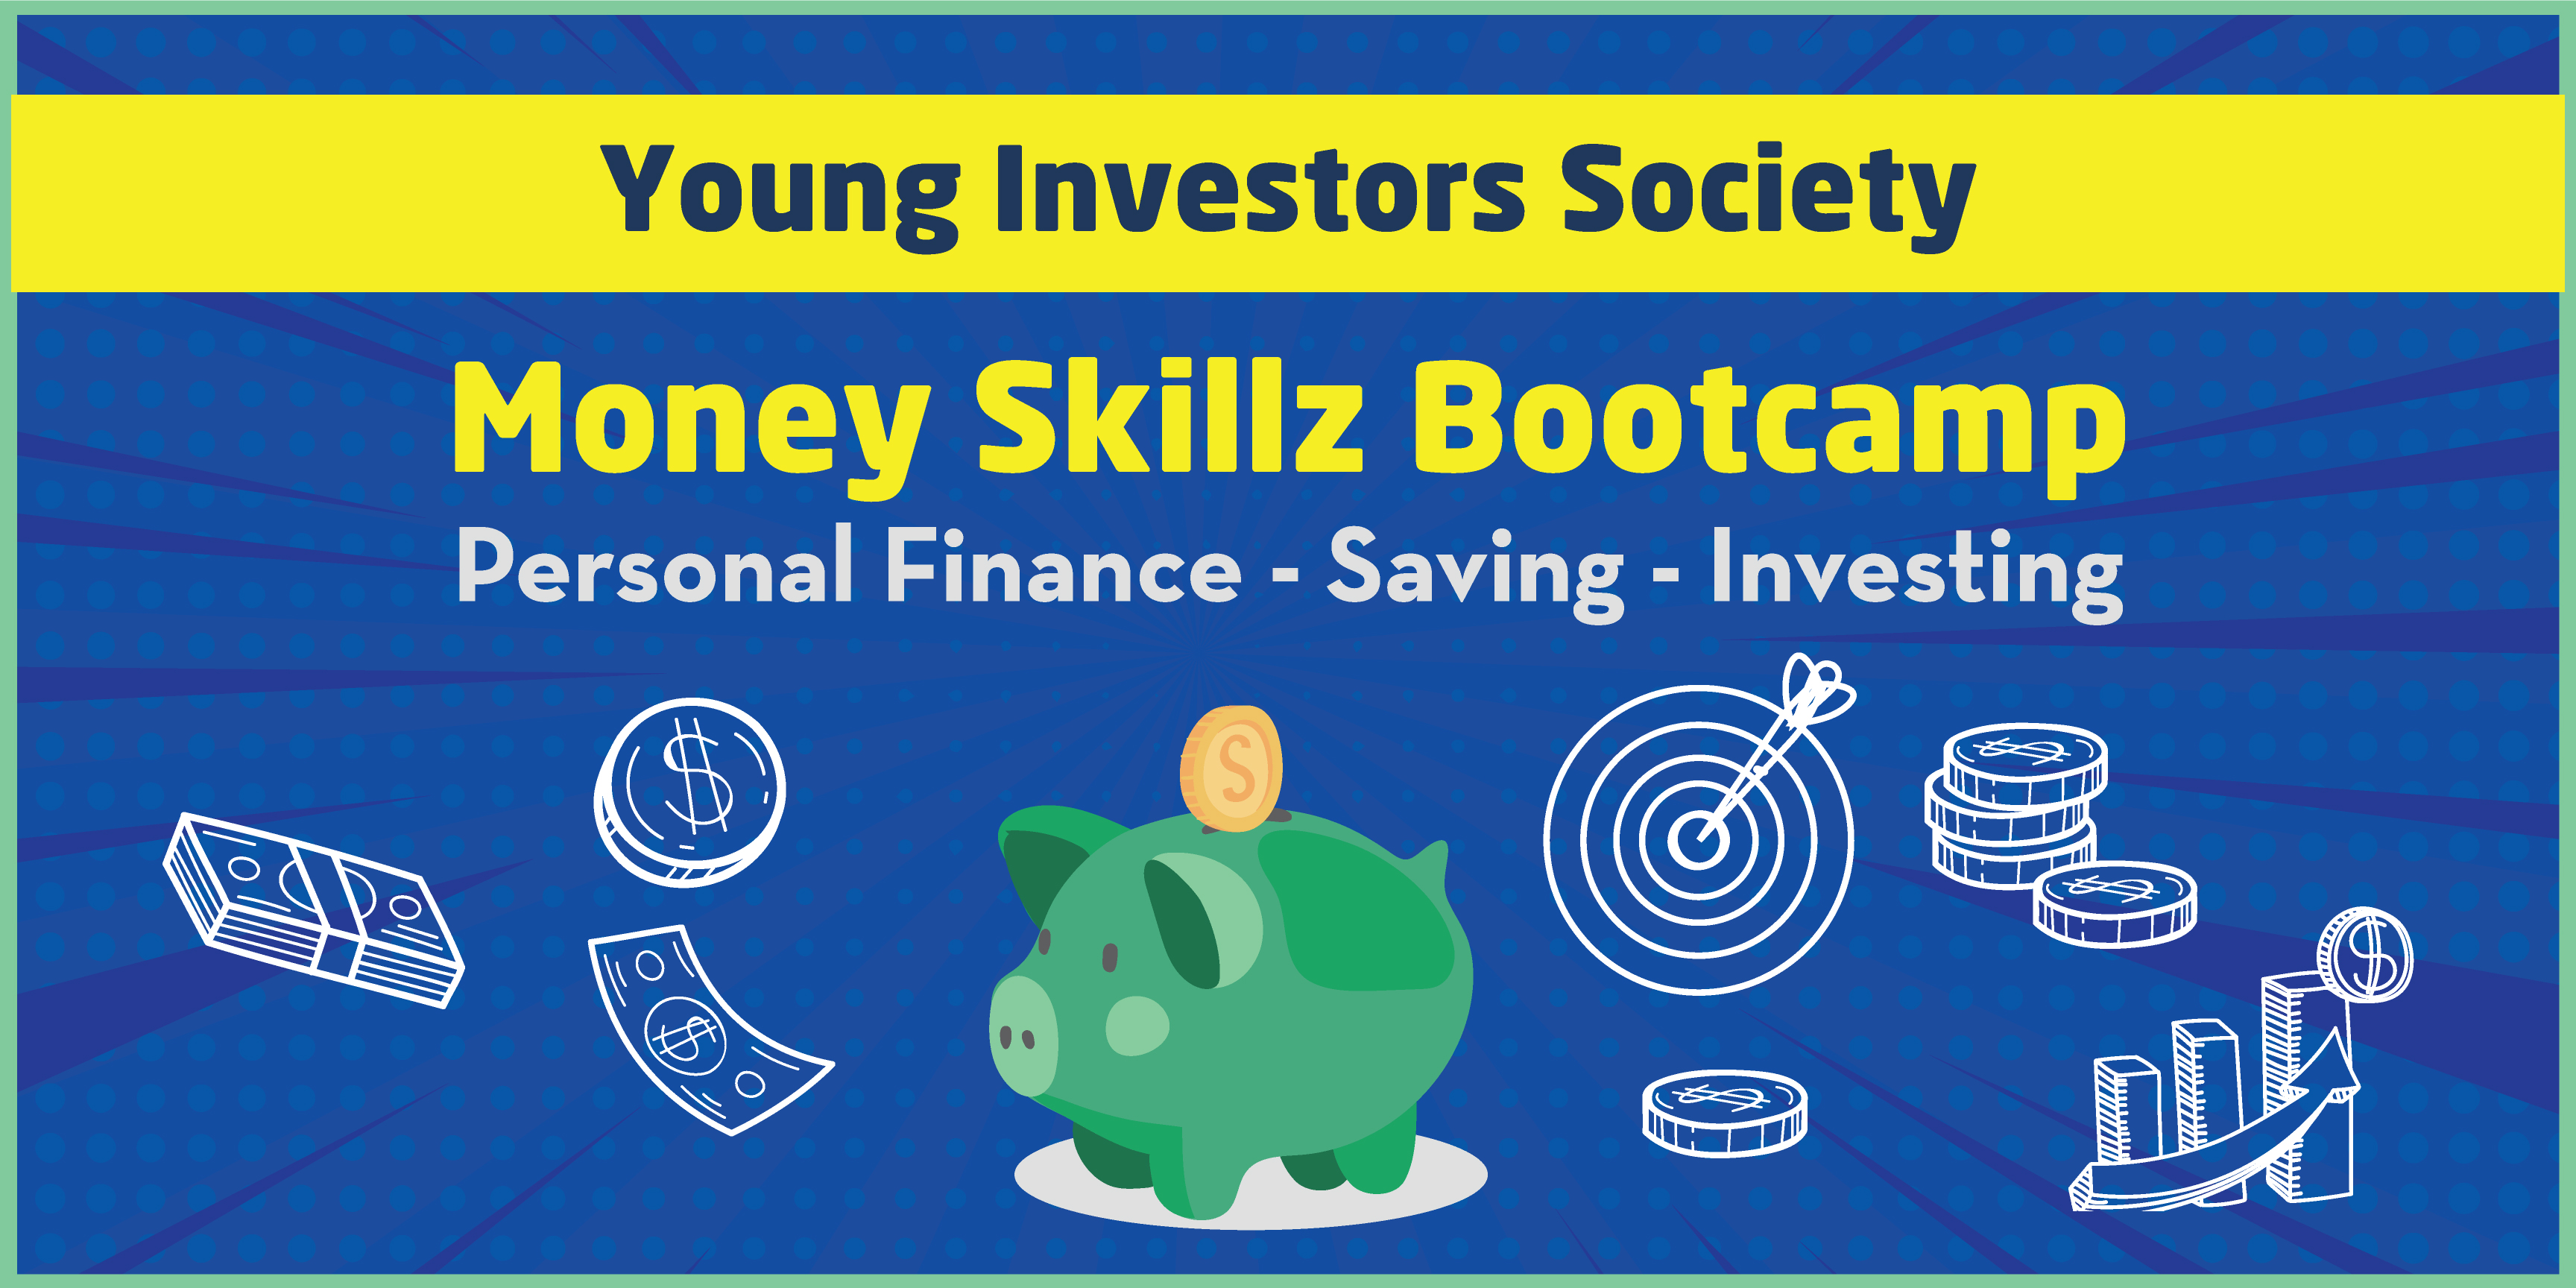 Money Skillz Bootcamp Coming Soon!